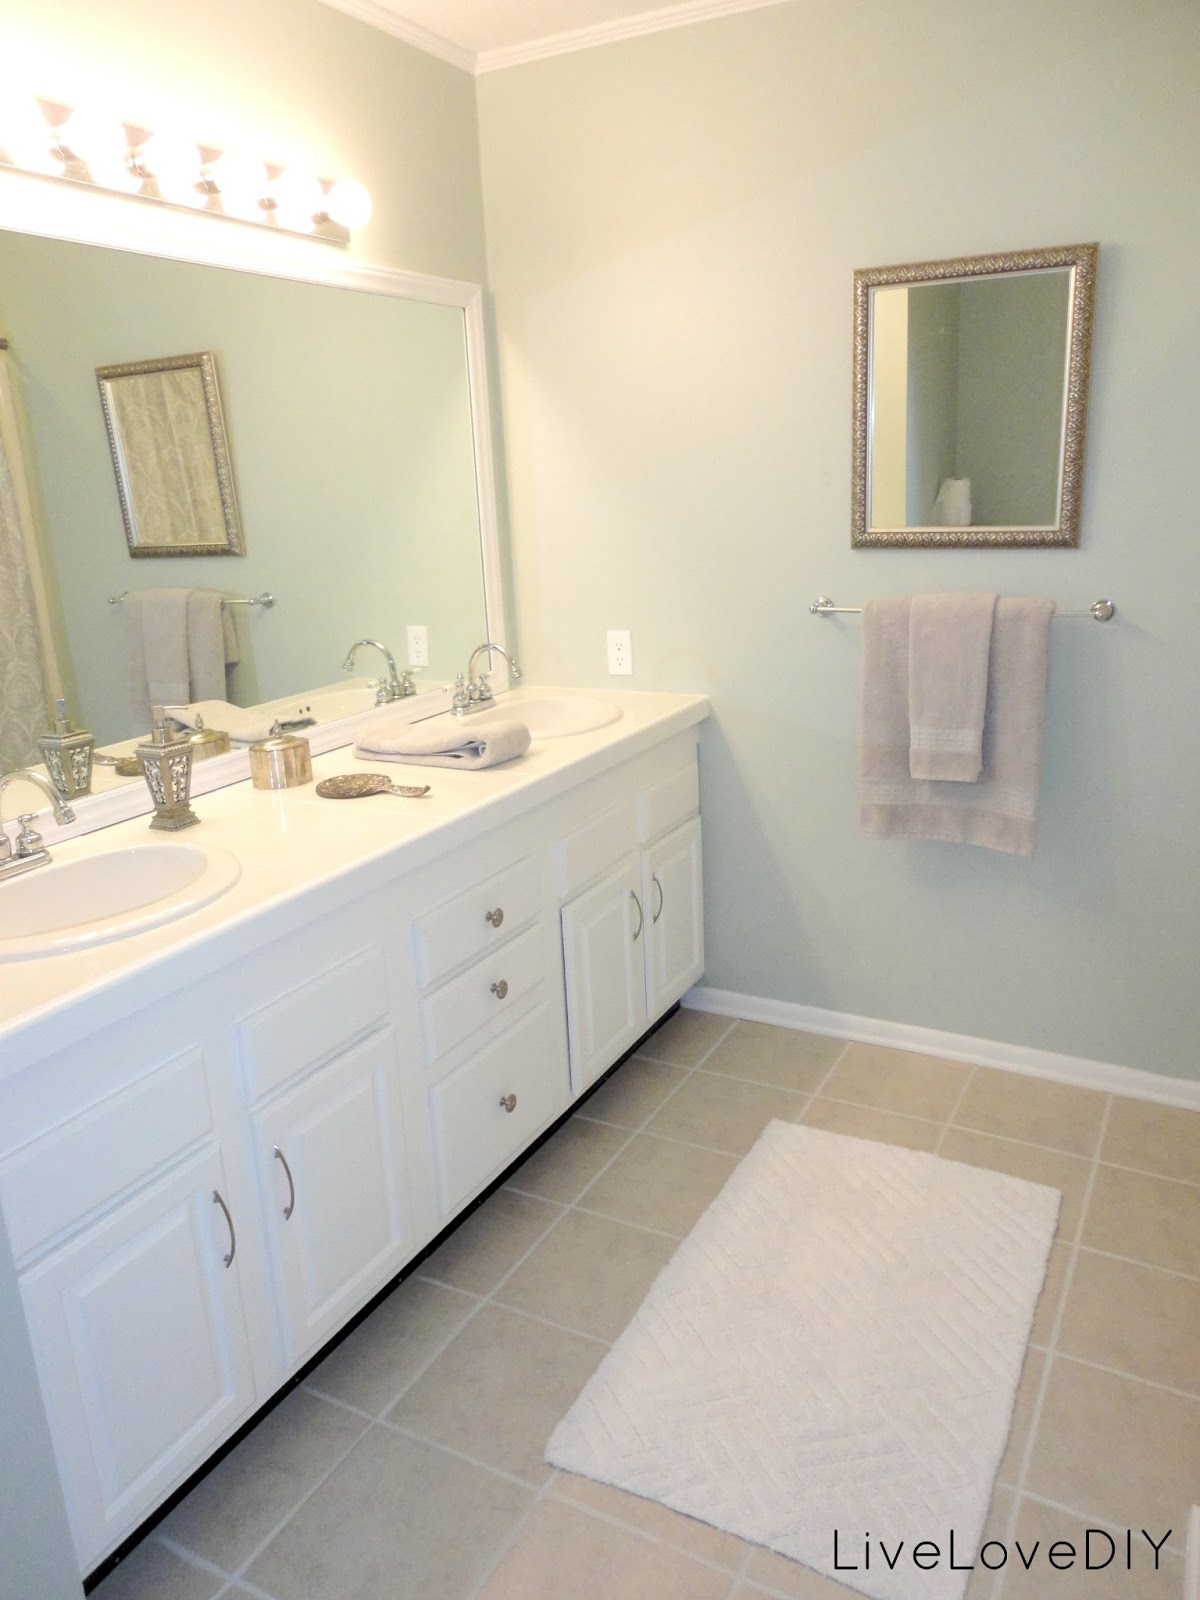 Livelovediy bathroom ideas how to right a wrong for Outdated bathroom ideas